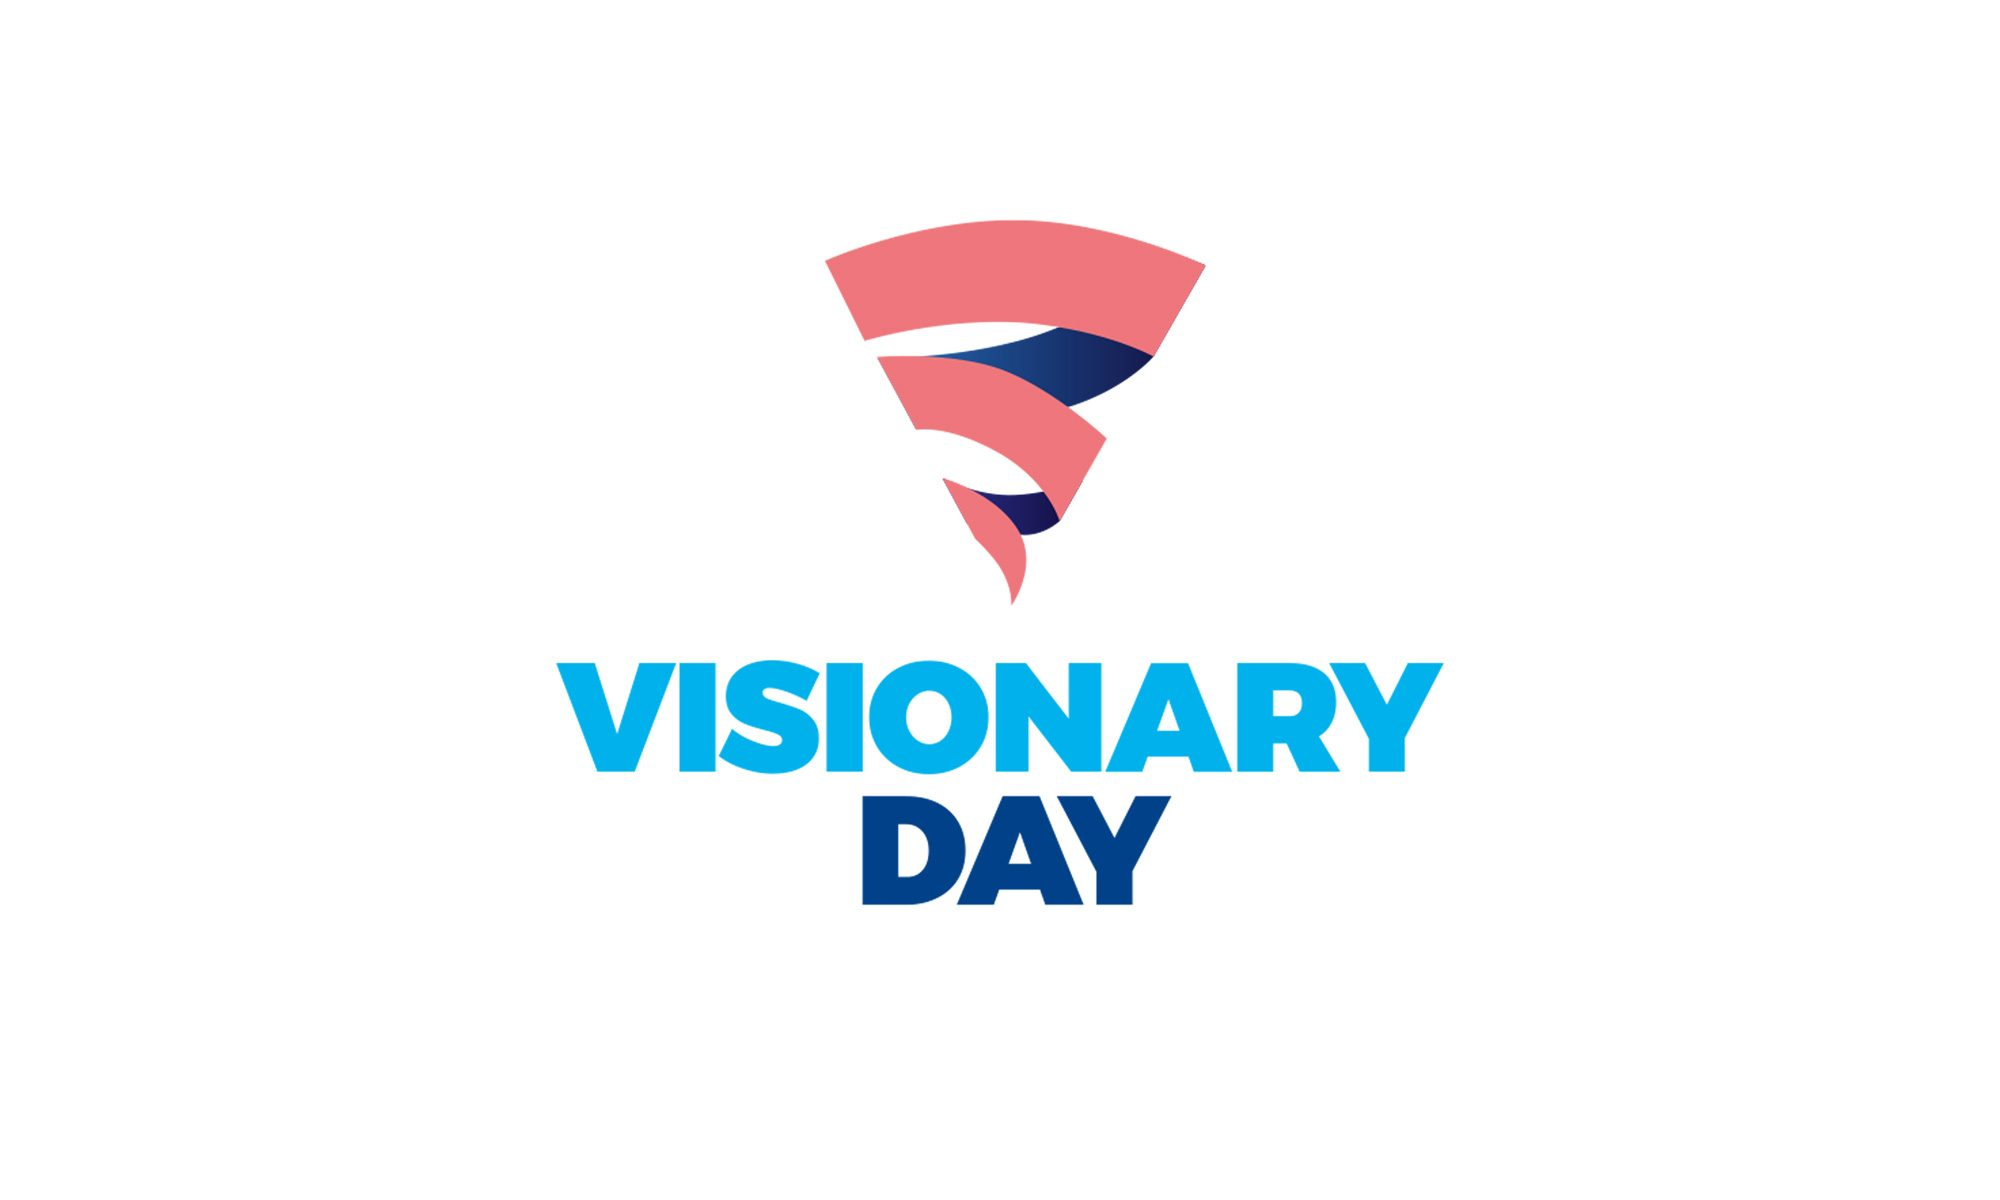 Visionary Day